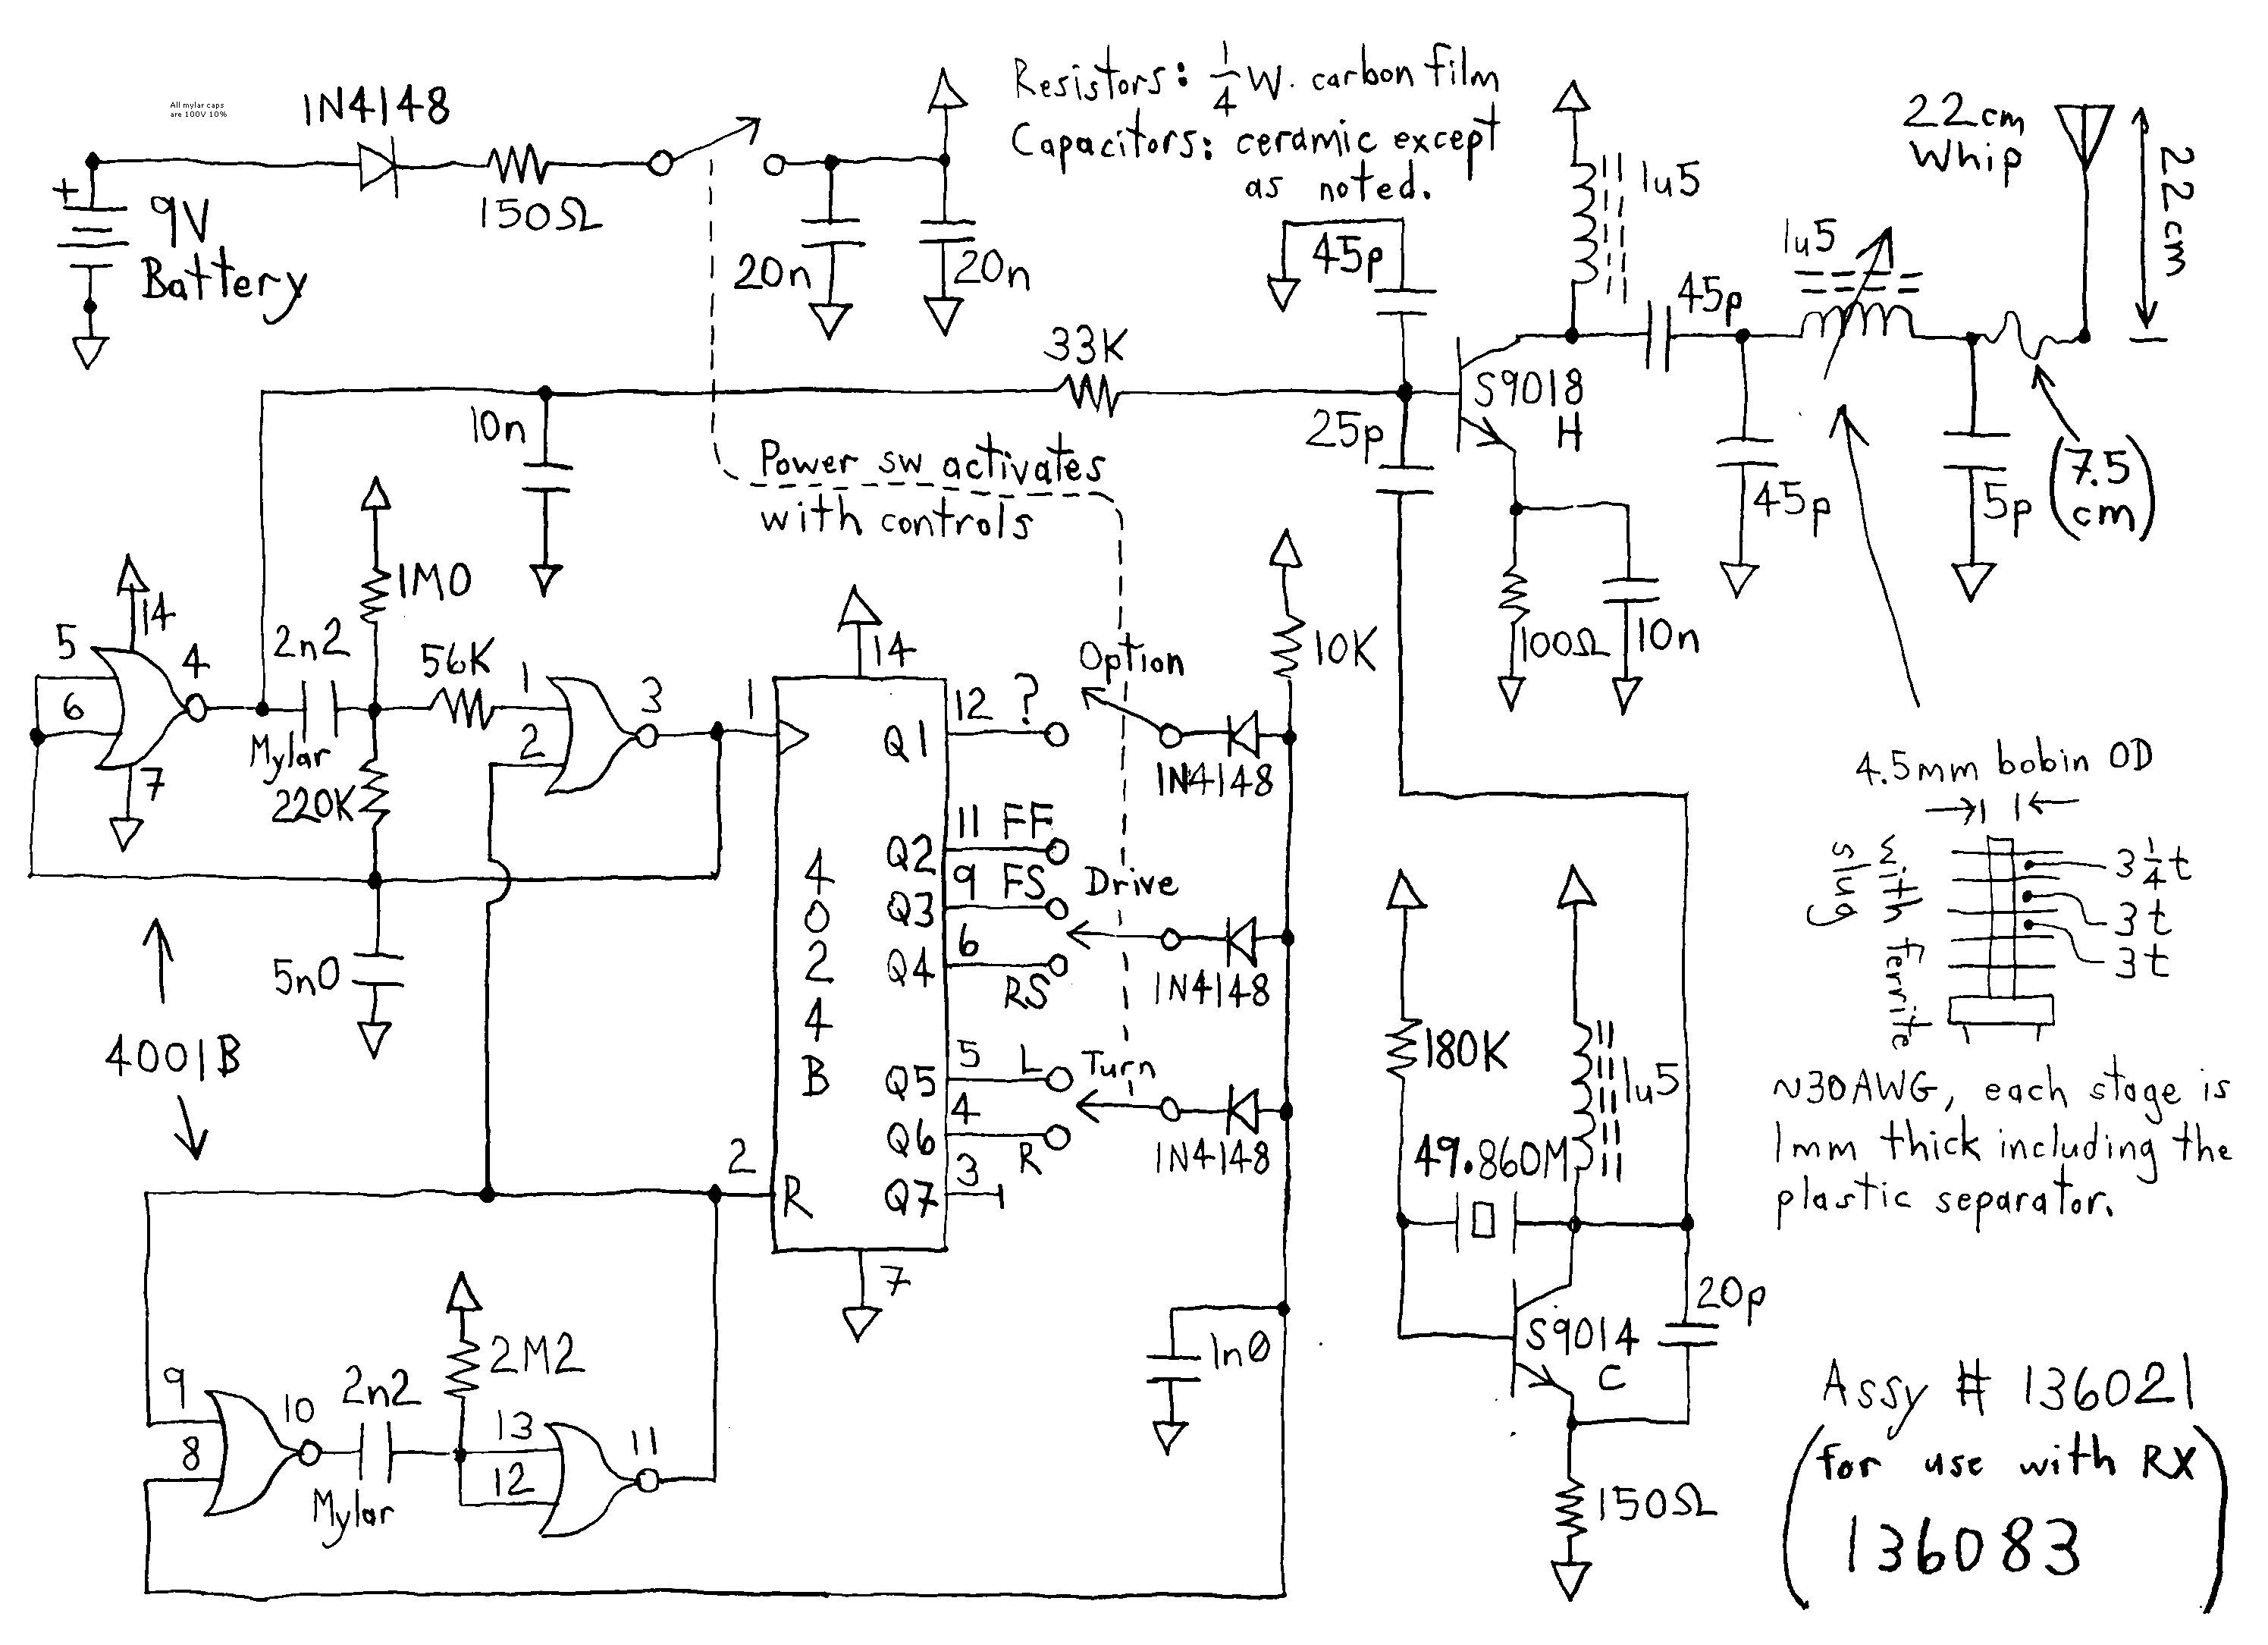 Automotive Wiring Diagram Symbols Inspirational Electronic Circuits Page Next Gr Rc Cars Cmos Electrical Diagram